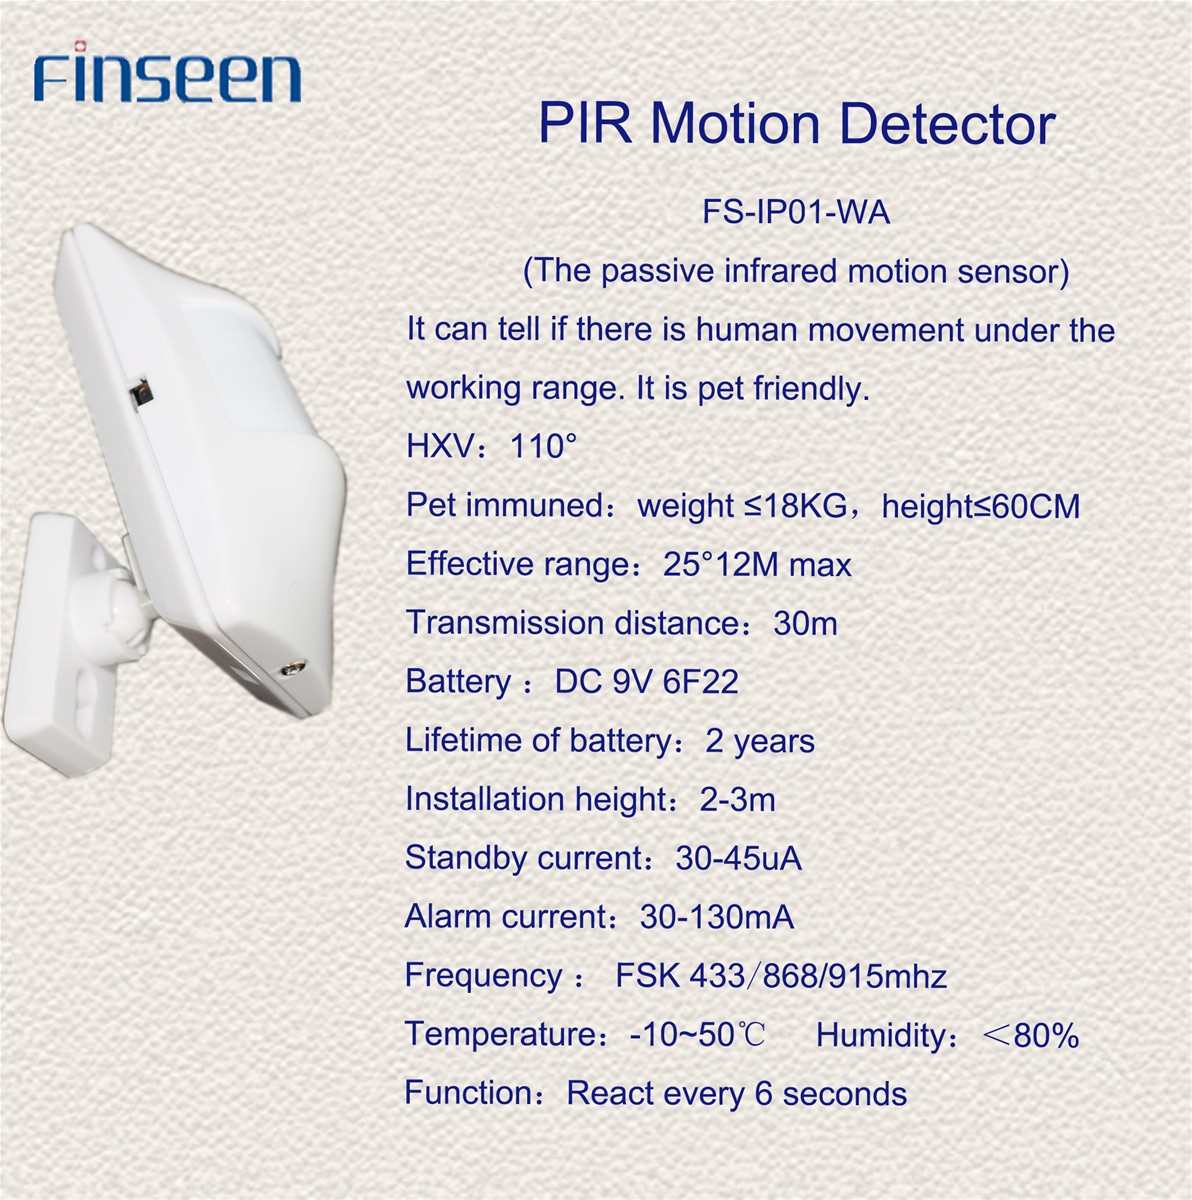 Finseen Pet-Friendly PIR detector 868mhz with backup battery FS-IP01-WA